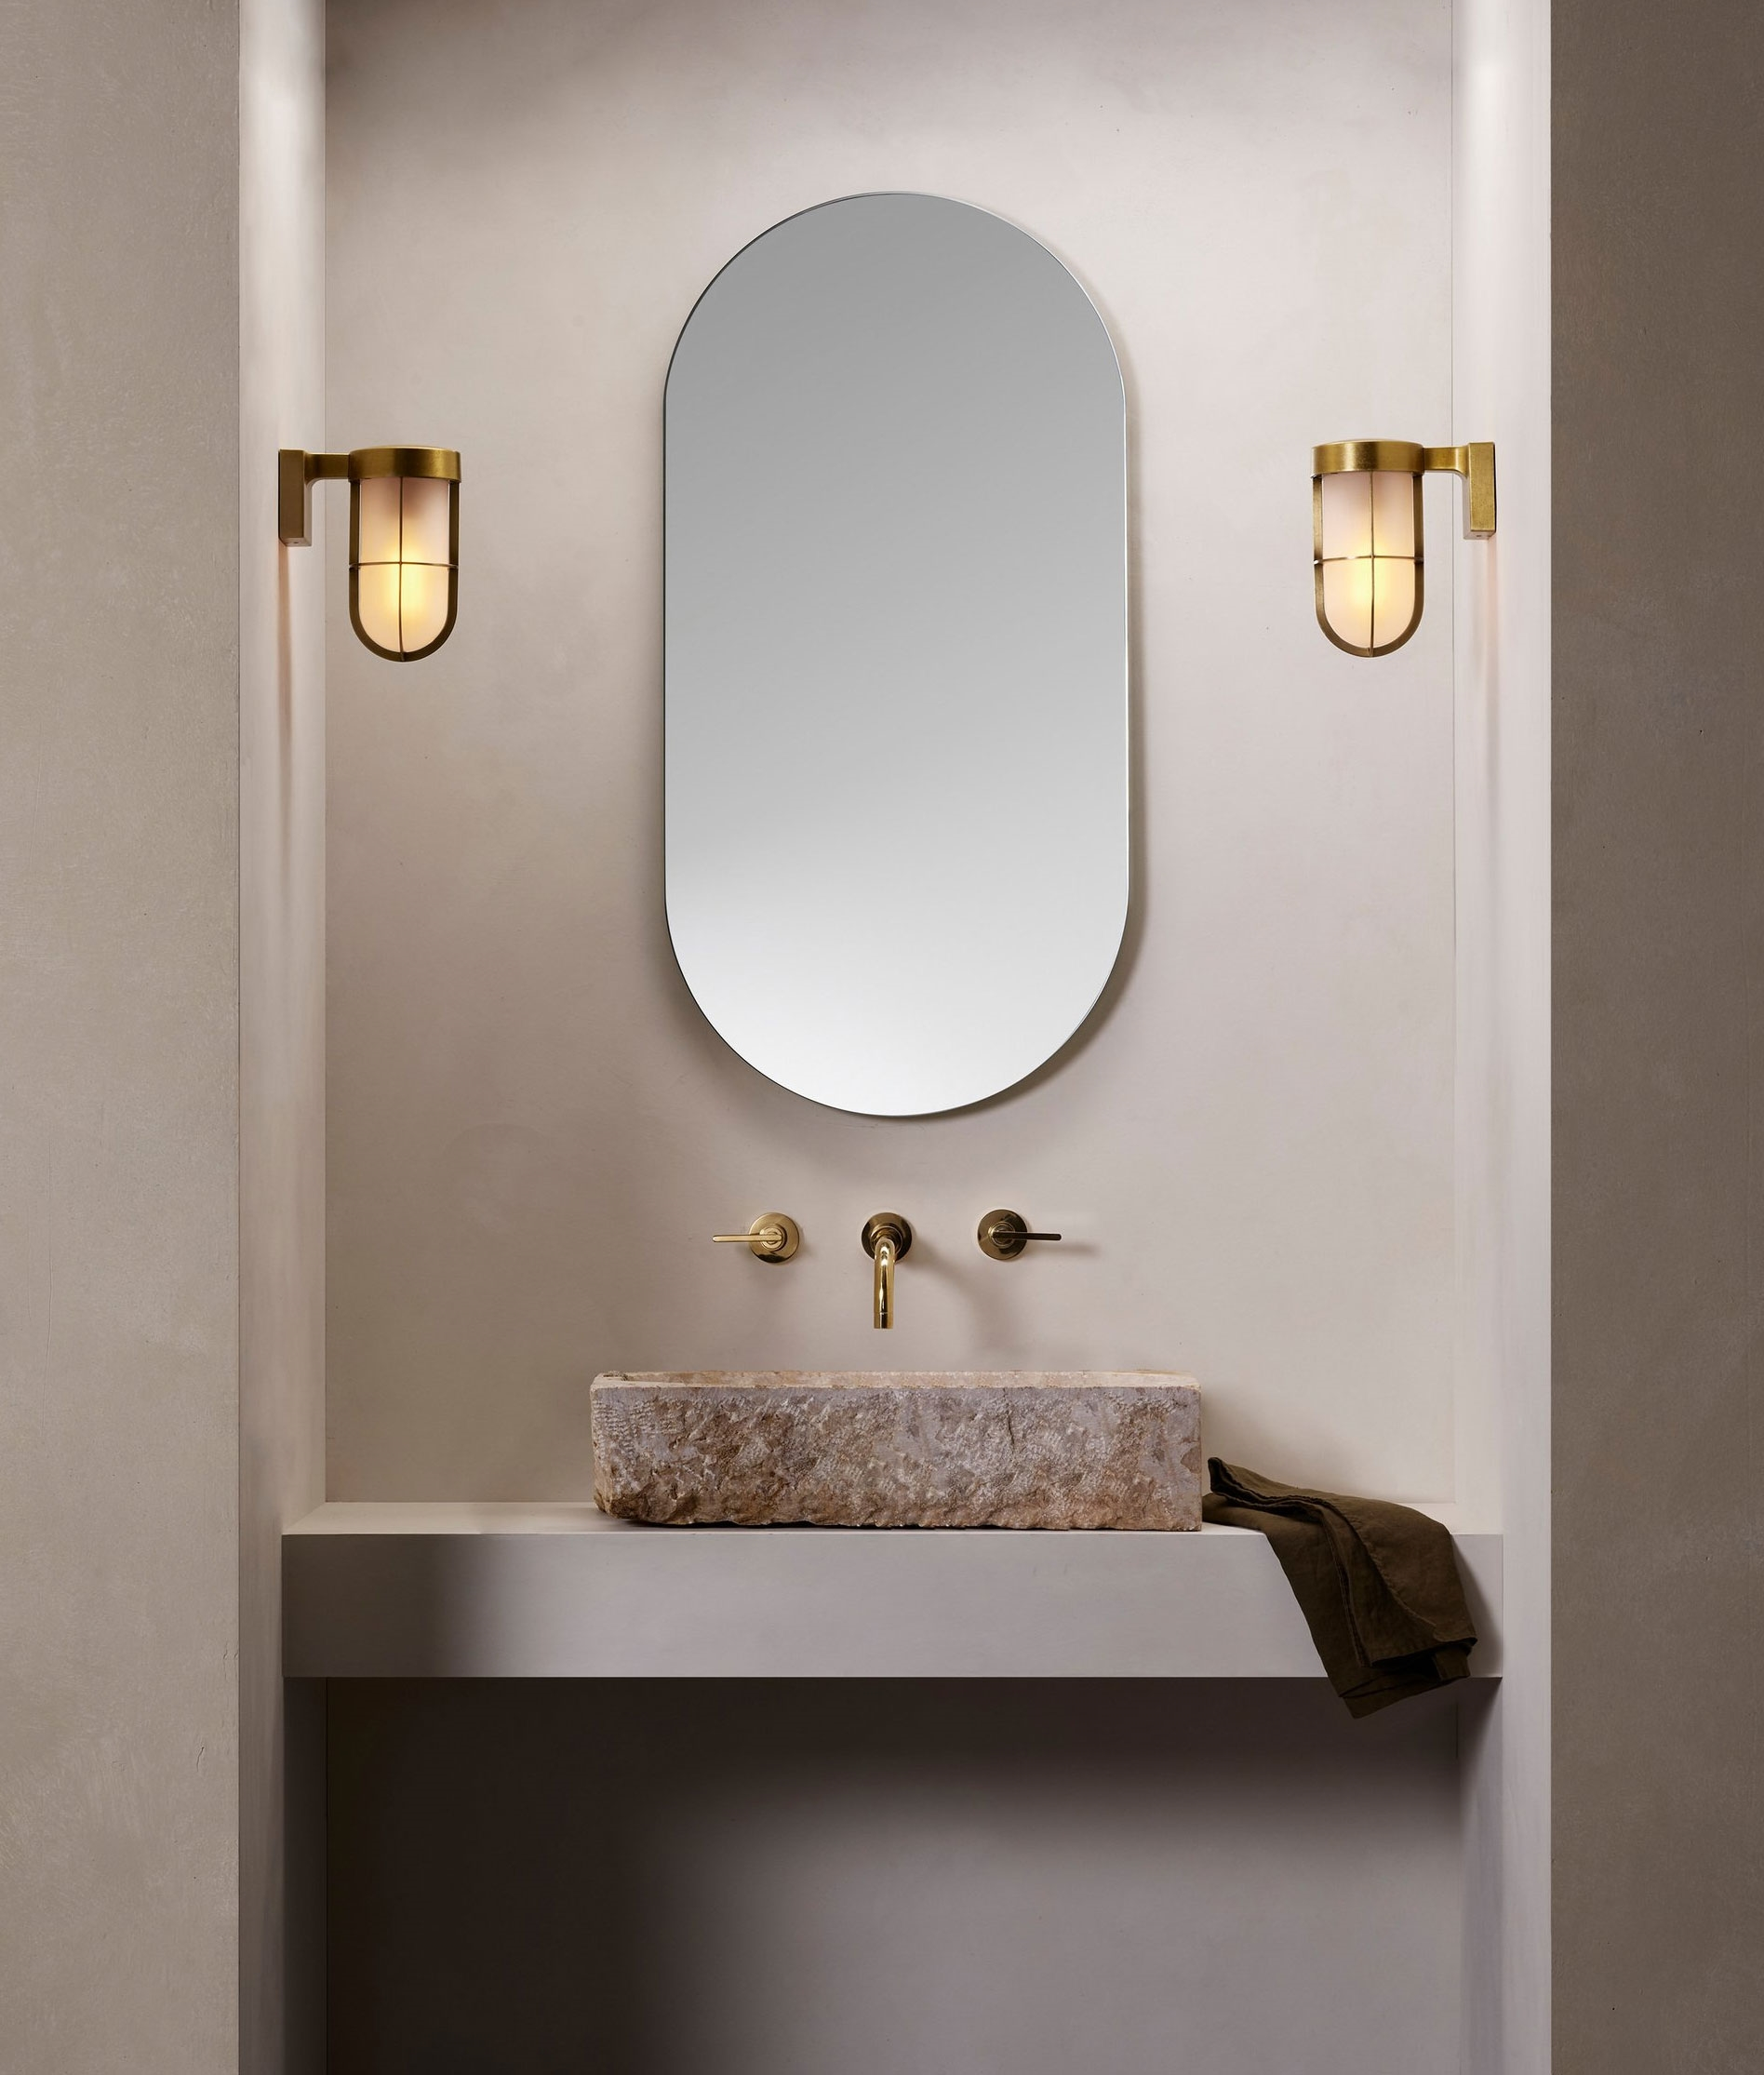 Cabin Style Ip44 Rated Wall Light Frosted Glass On A Brass Bronze Or Nickel Bracket Designed For Use Inside Or Out